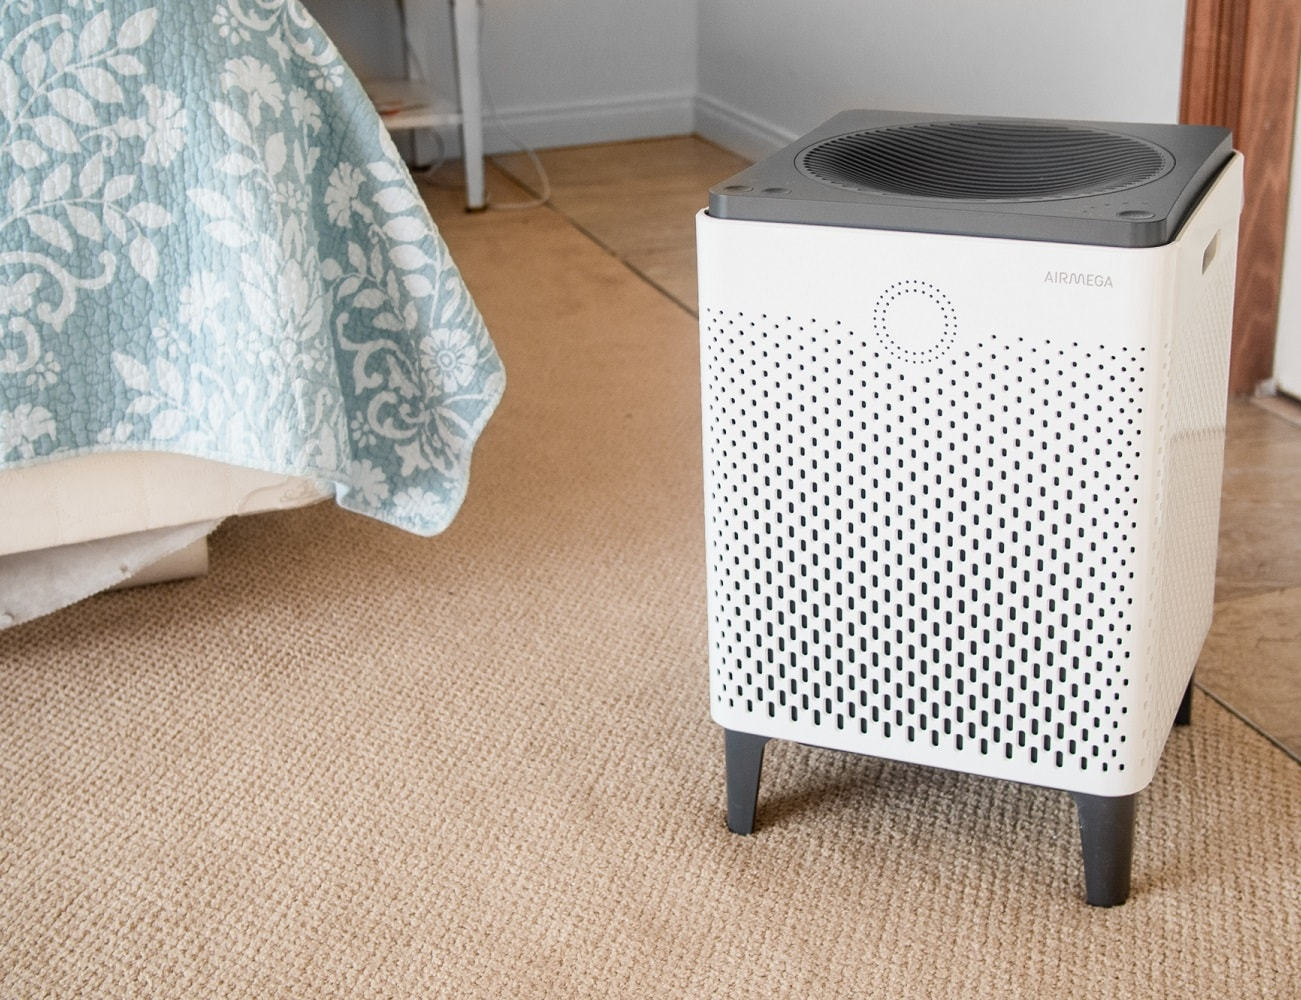 residential air purifiers market in the [115 pages report] india air purifiers market size 2021 by filter type (hepa & activated carbon), by end user sector, market trends, share, competition forecast.